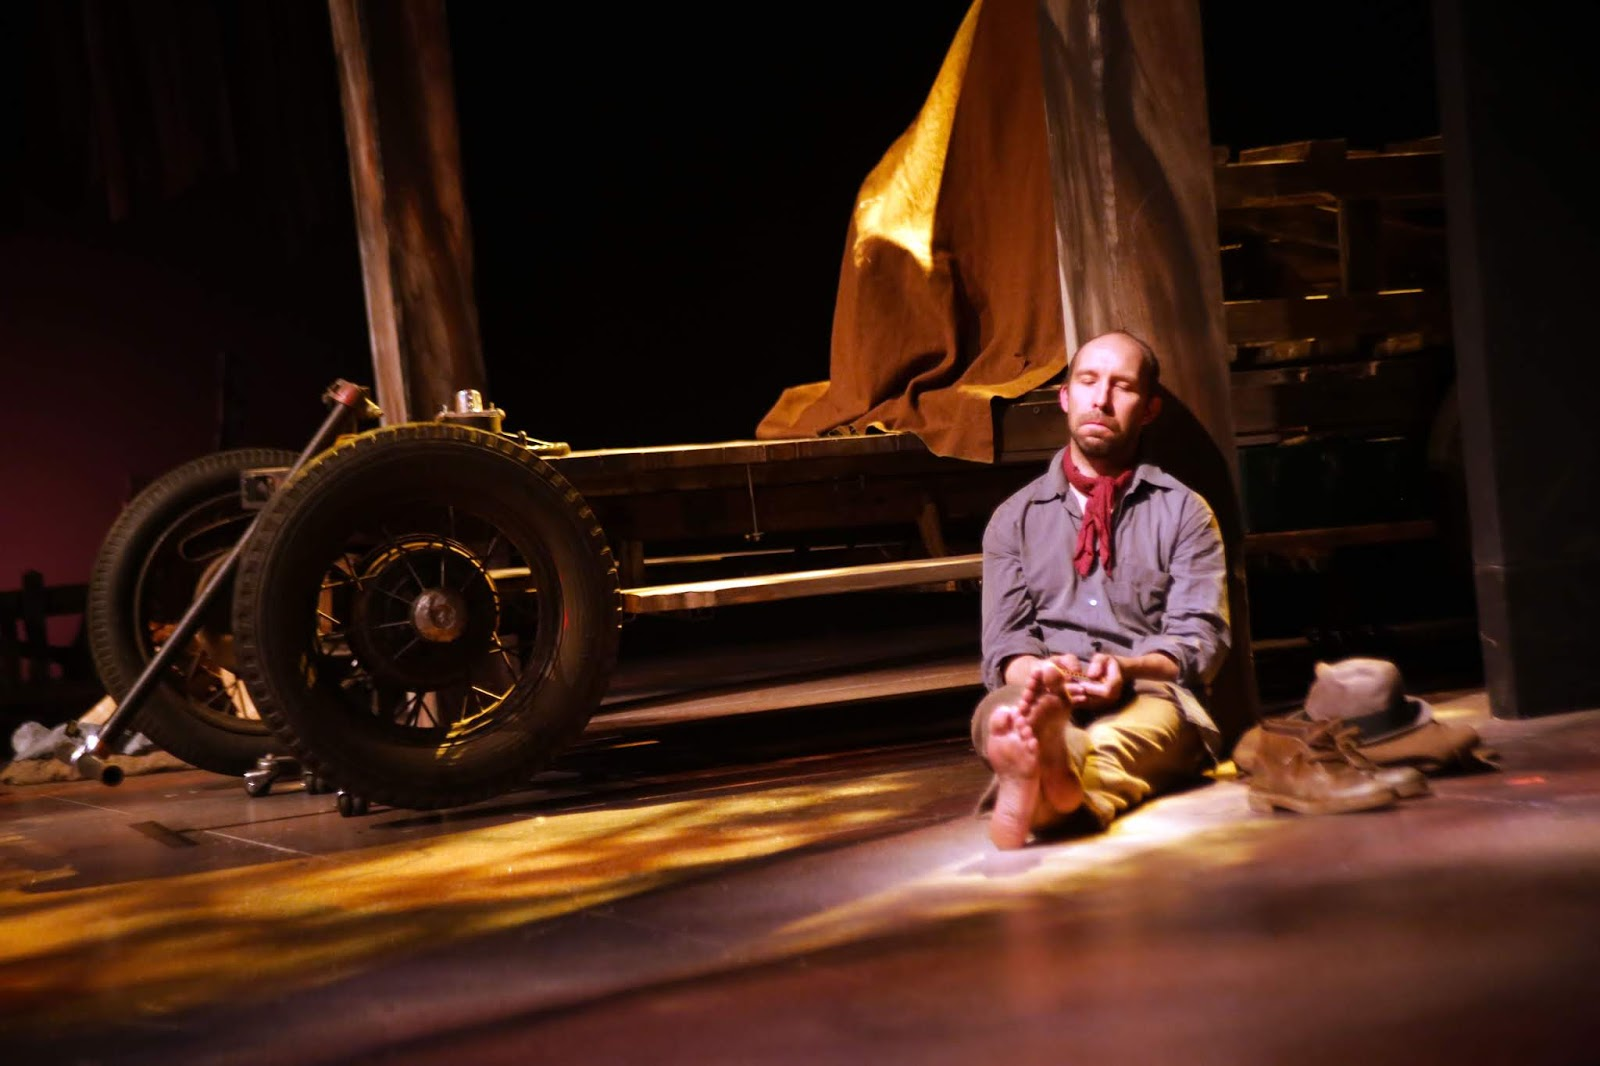 grapes of wrath play characters